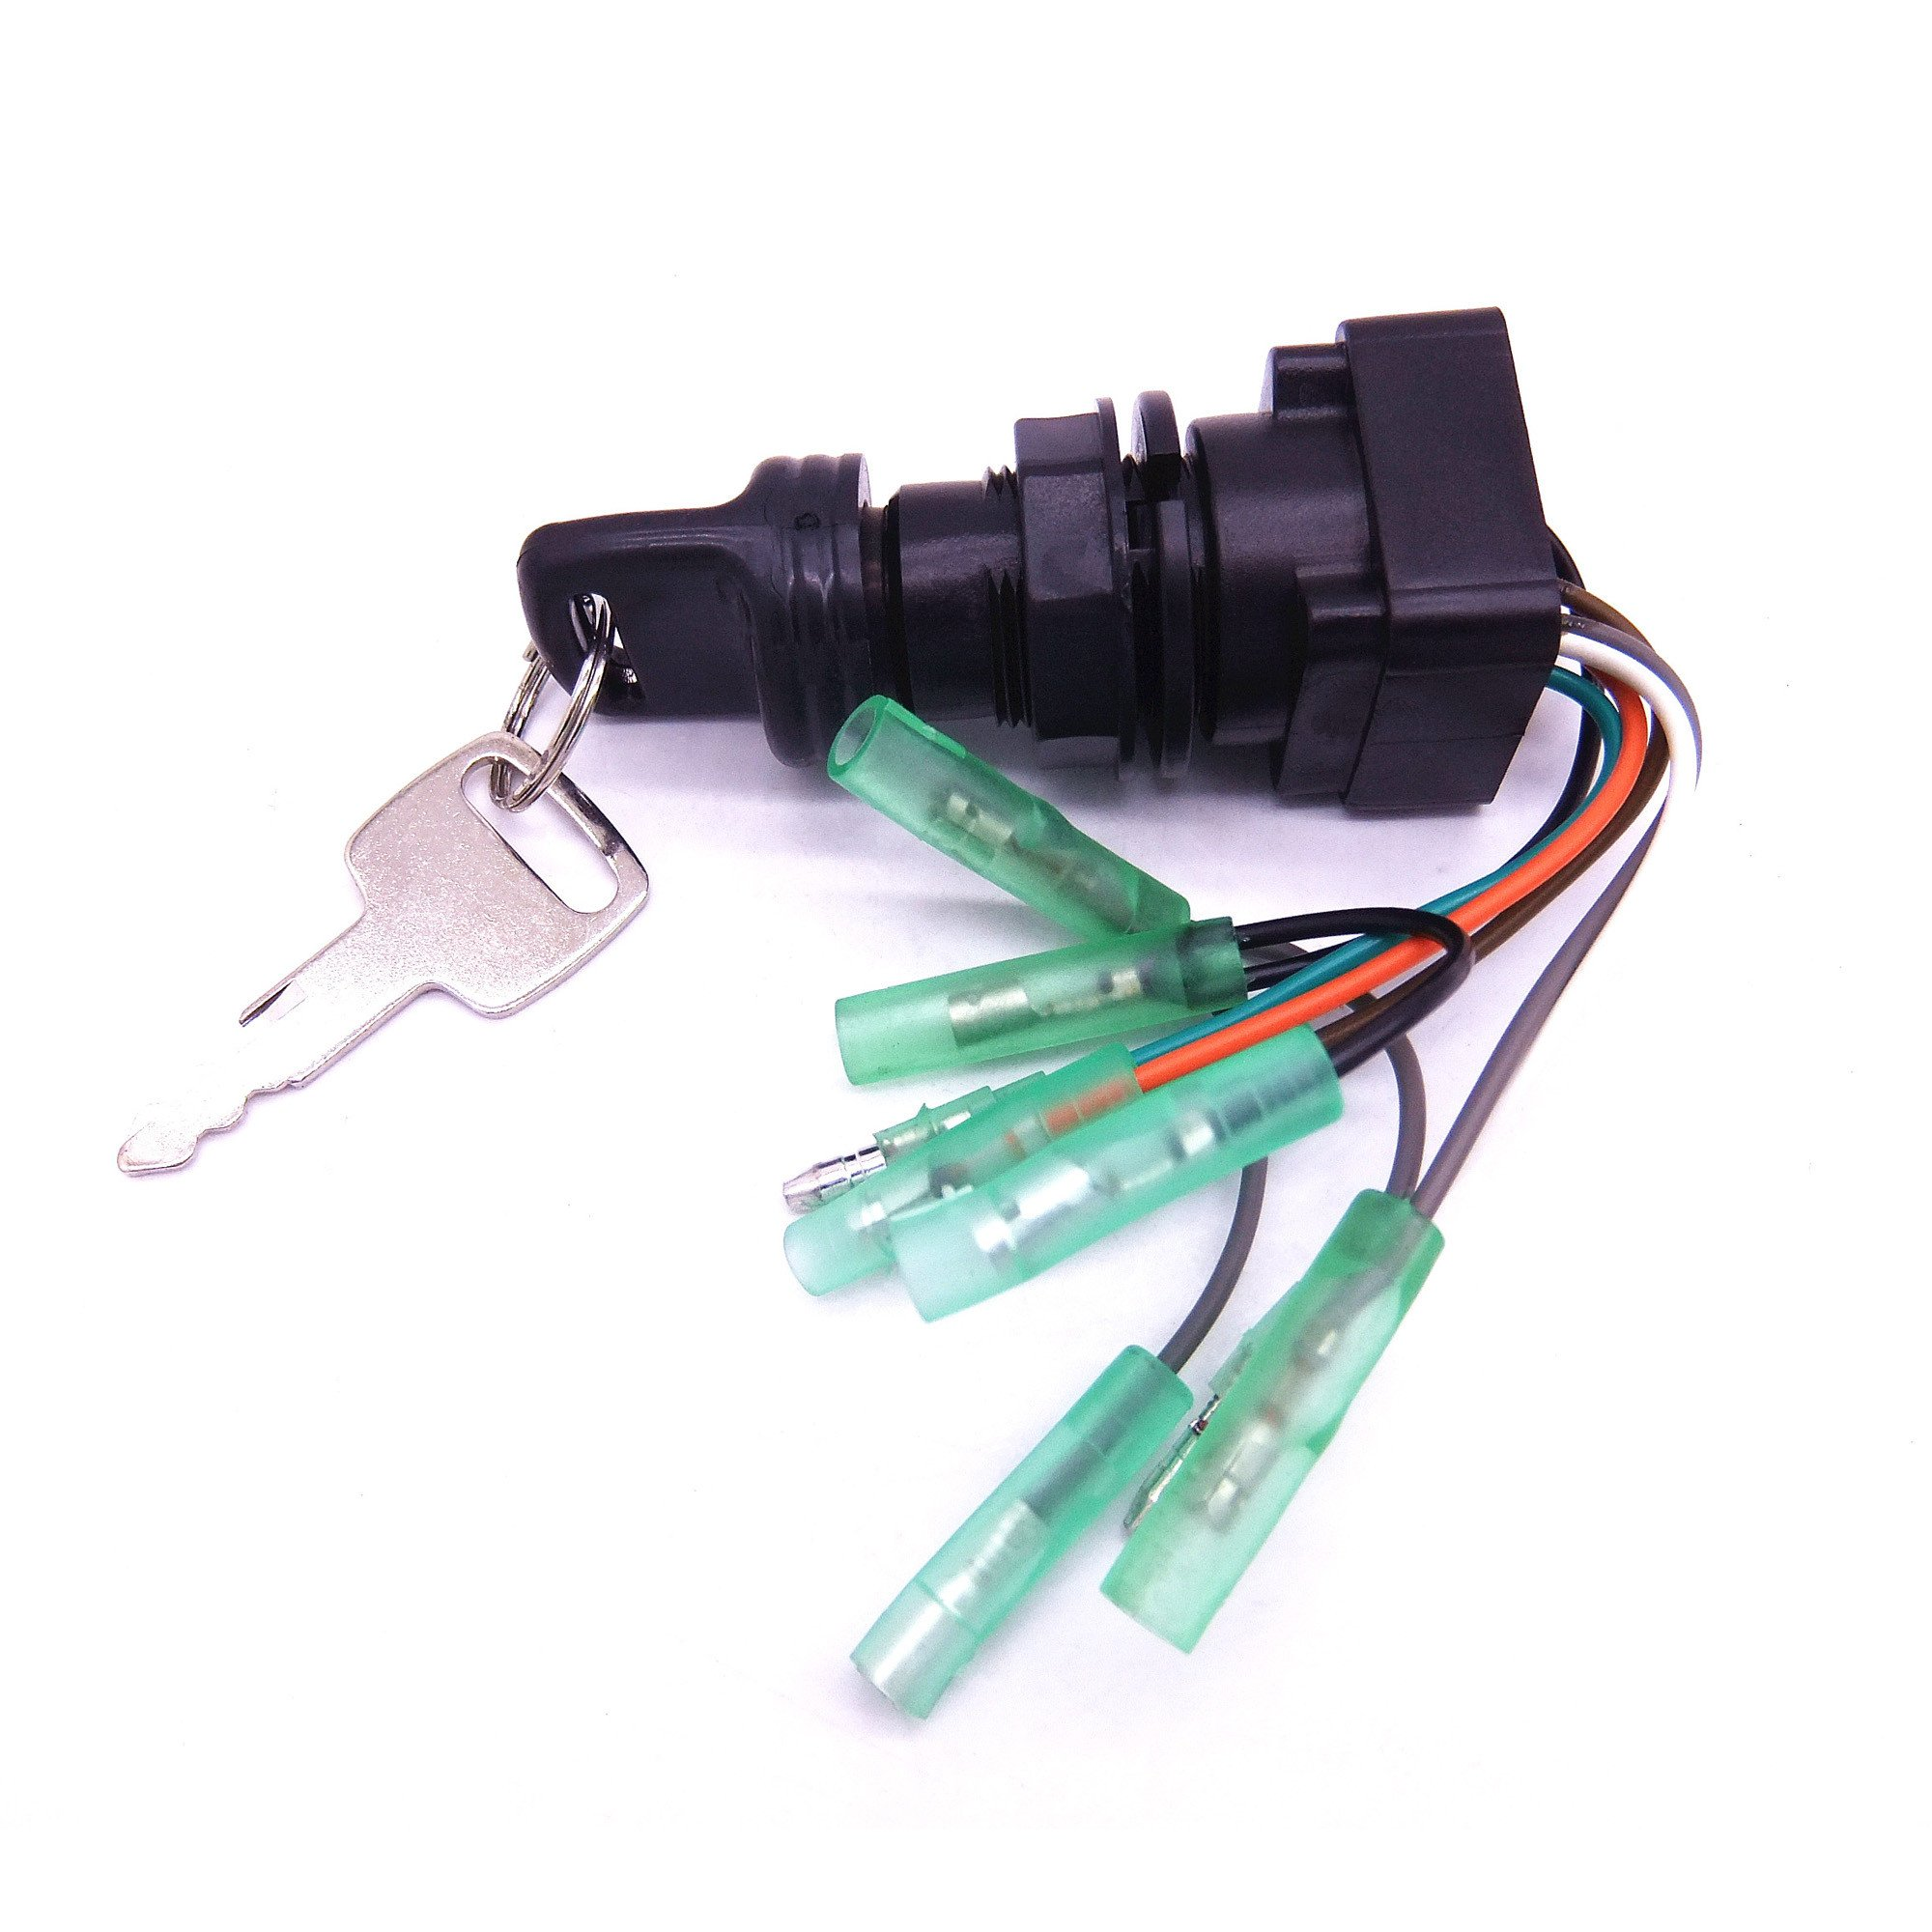 SouthMarine 37110-92E01 37110-99E01 37110-99E00 Boat Motor Ignition Switch Assembly for Suzuki Outboard Motor by SouthMarine